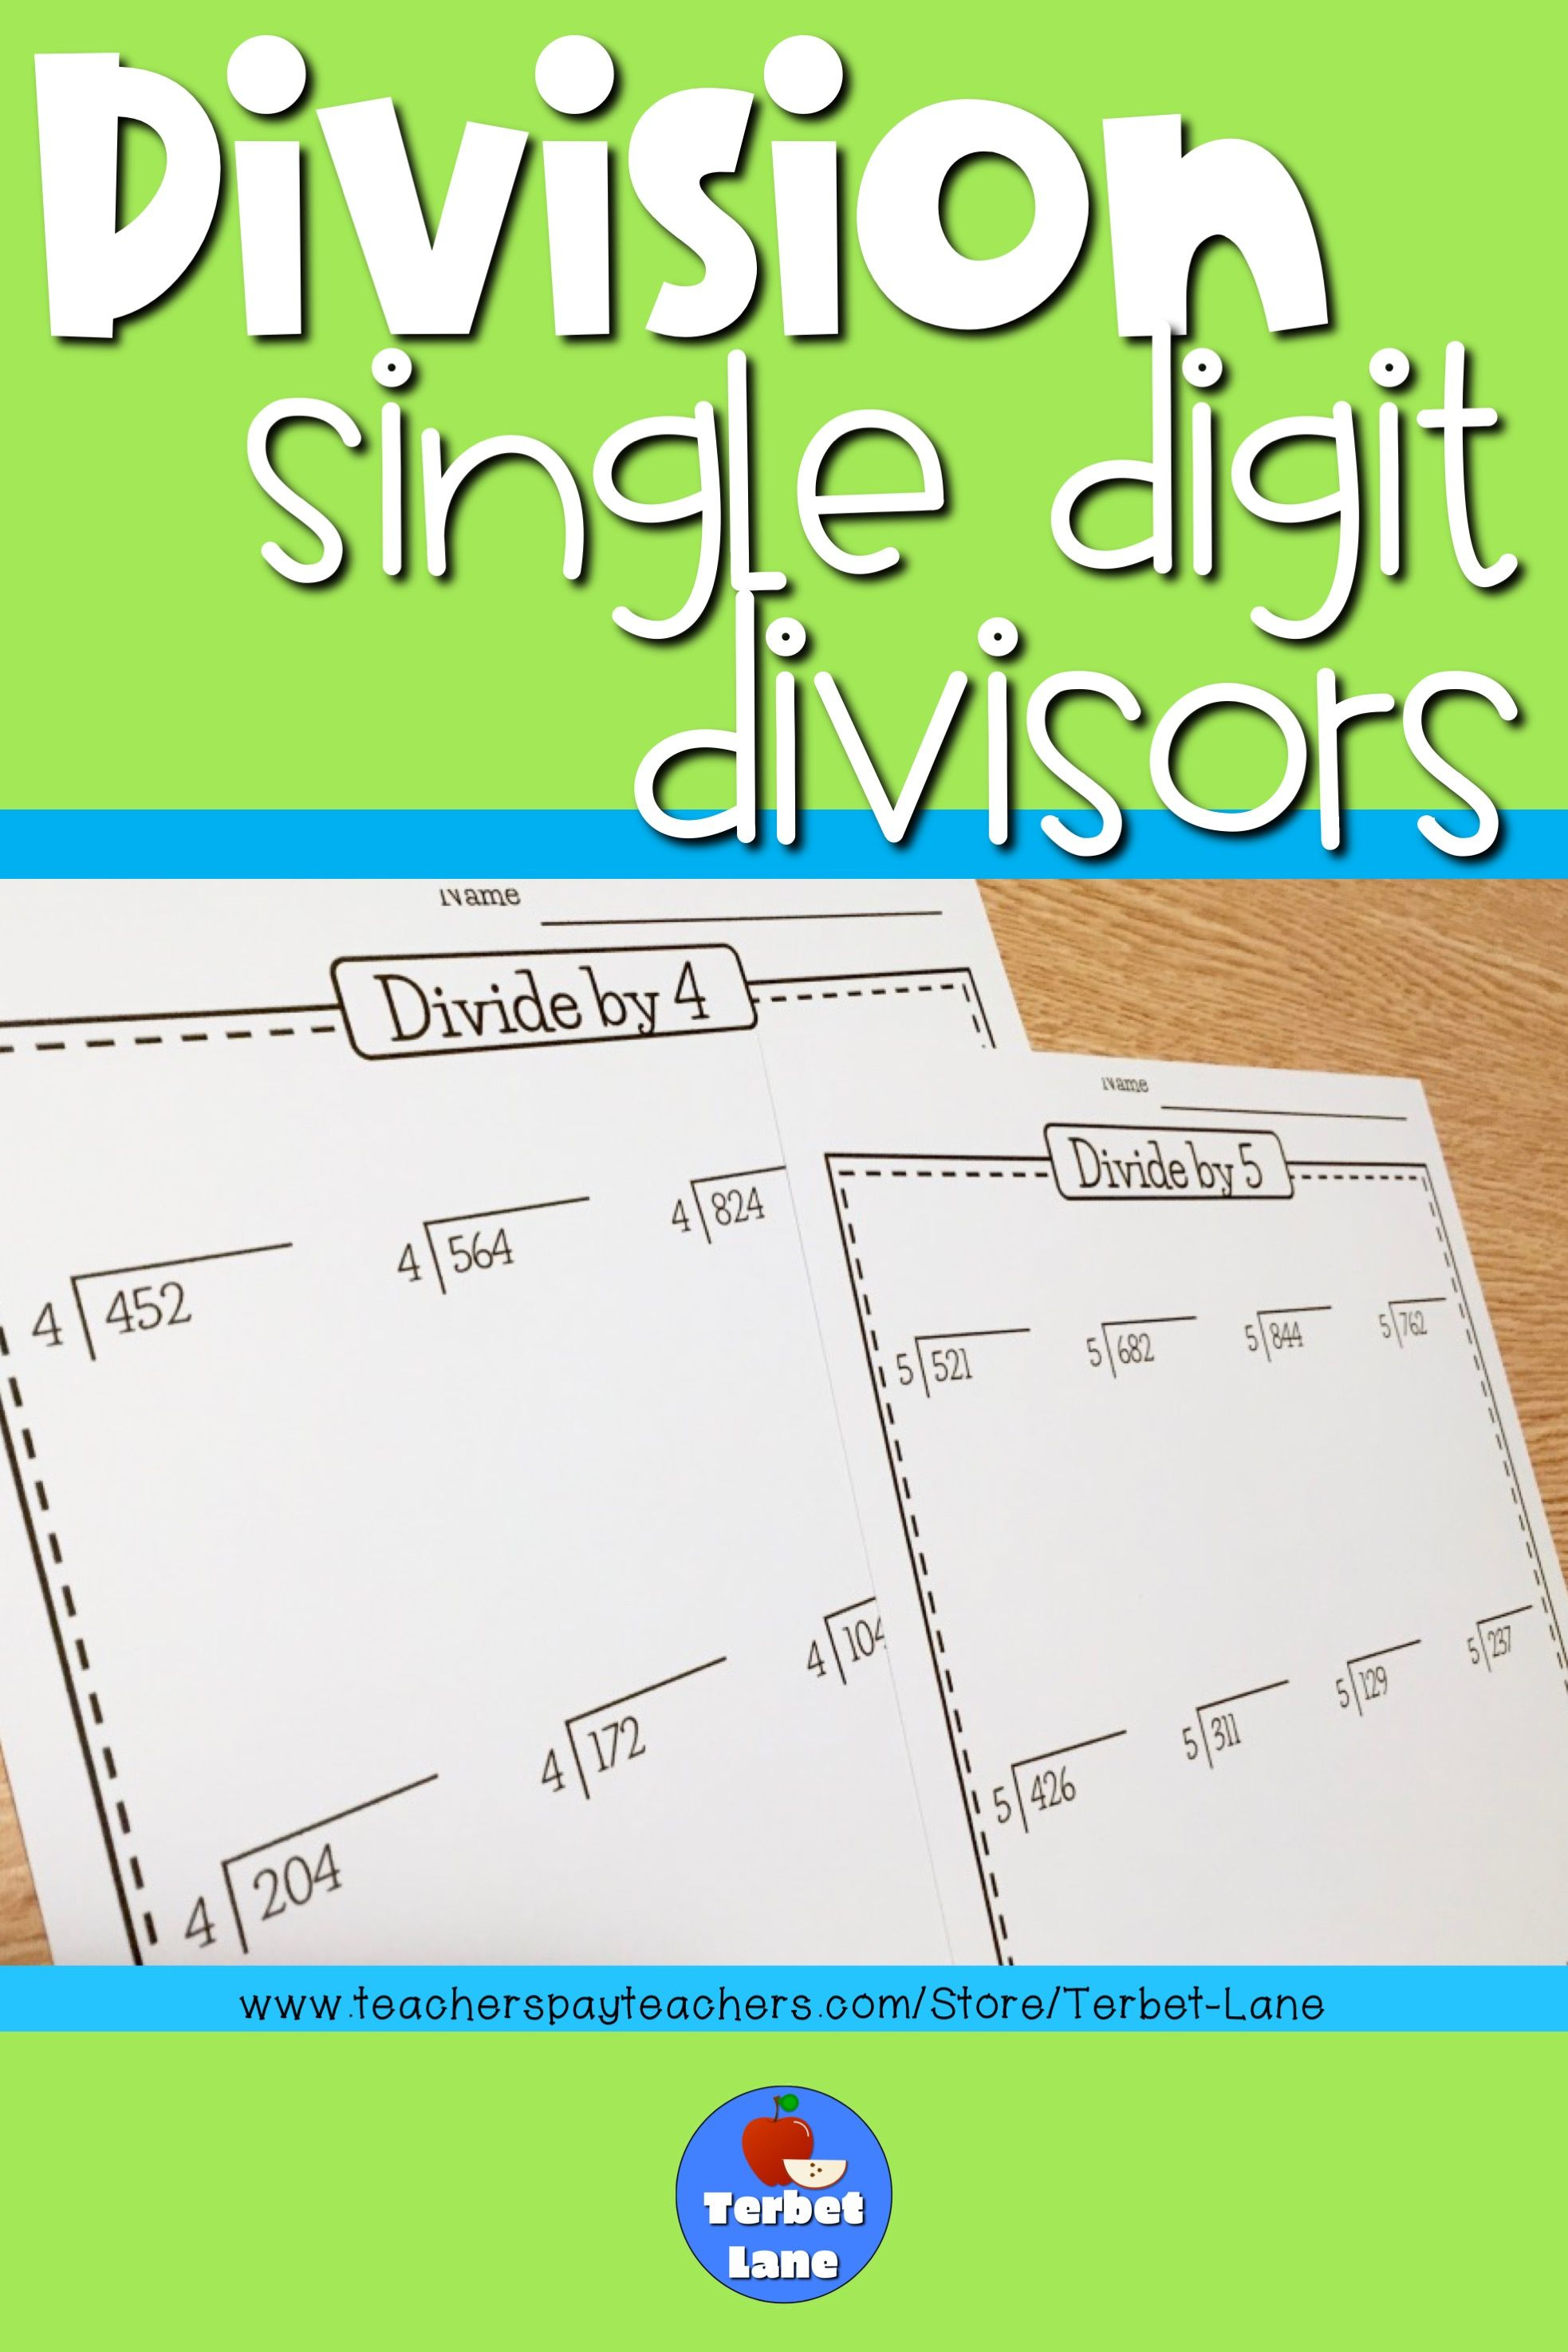 15 Best 3 Digit Division Worksheets Images On Best